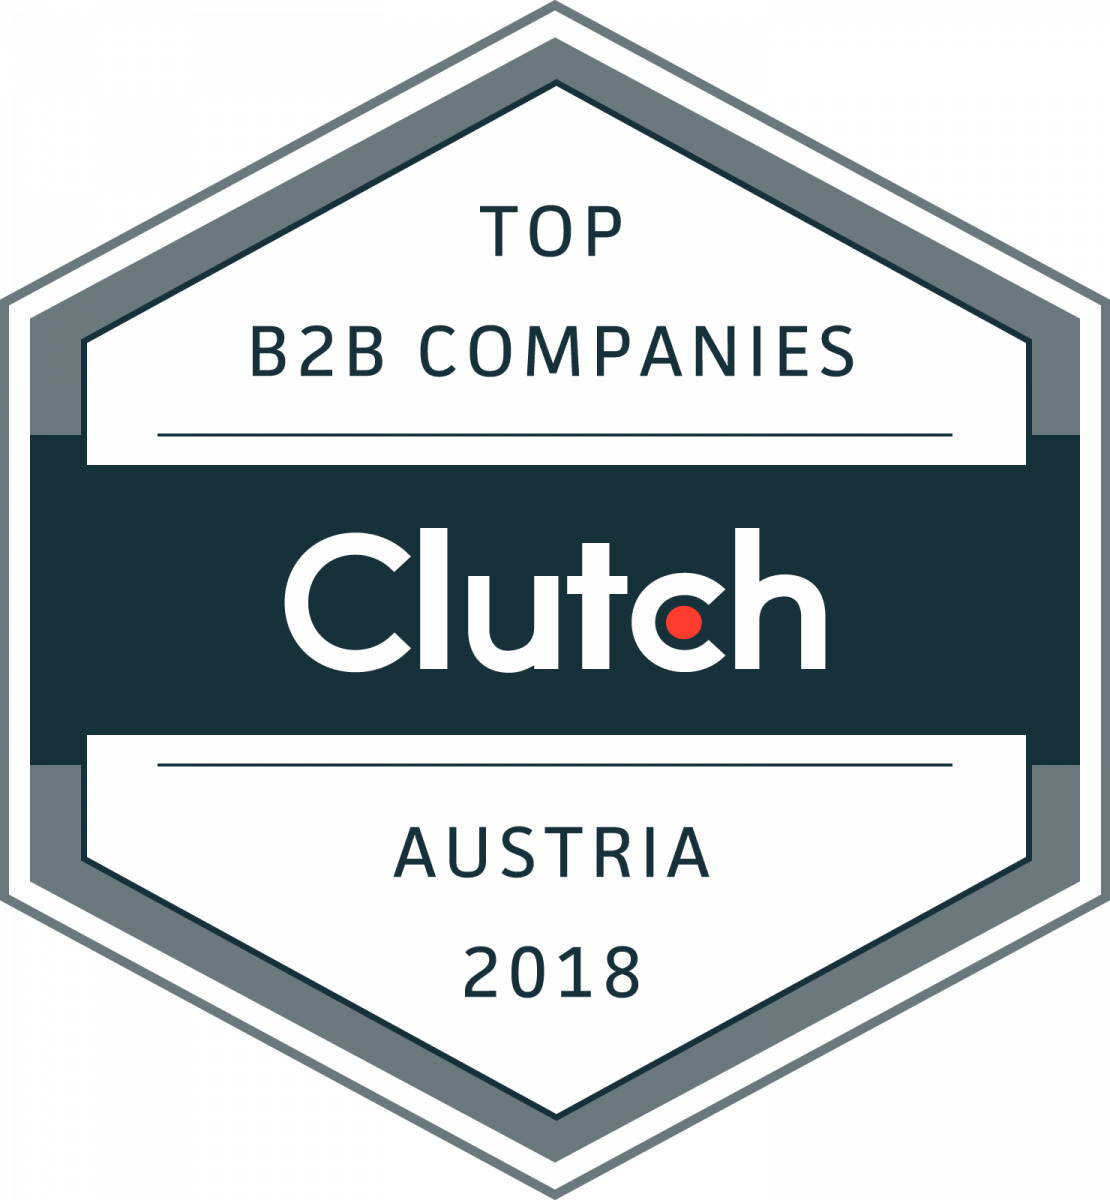 top B2B companies in Austria in 2018